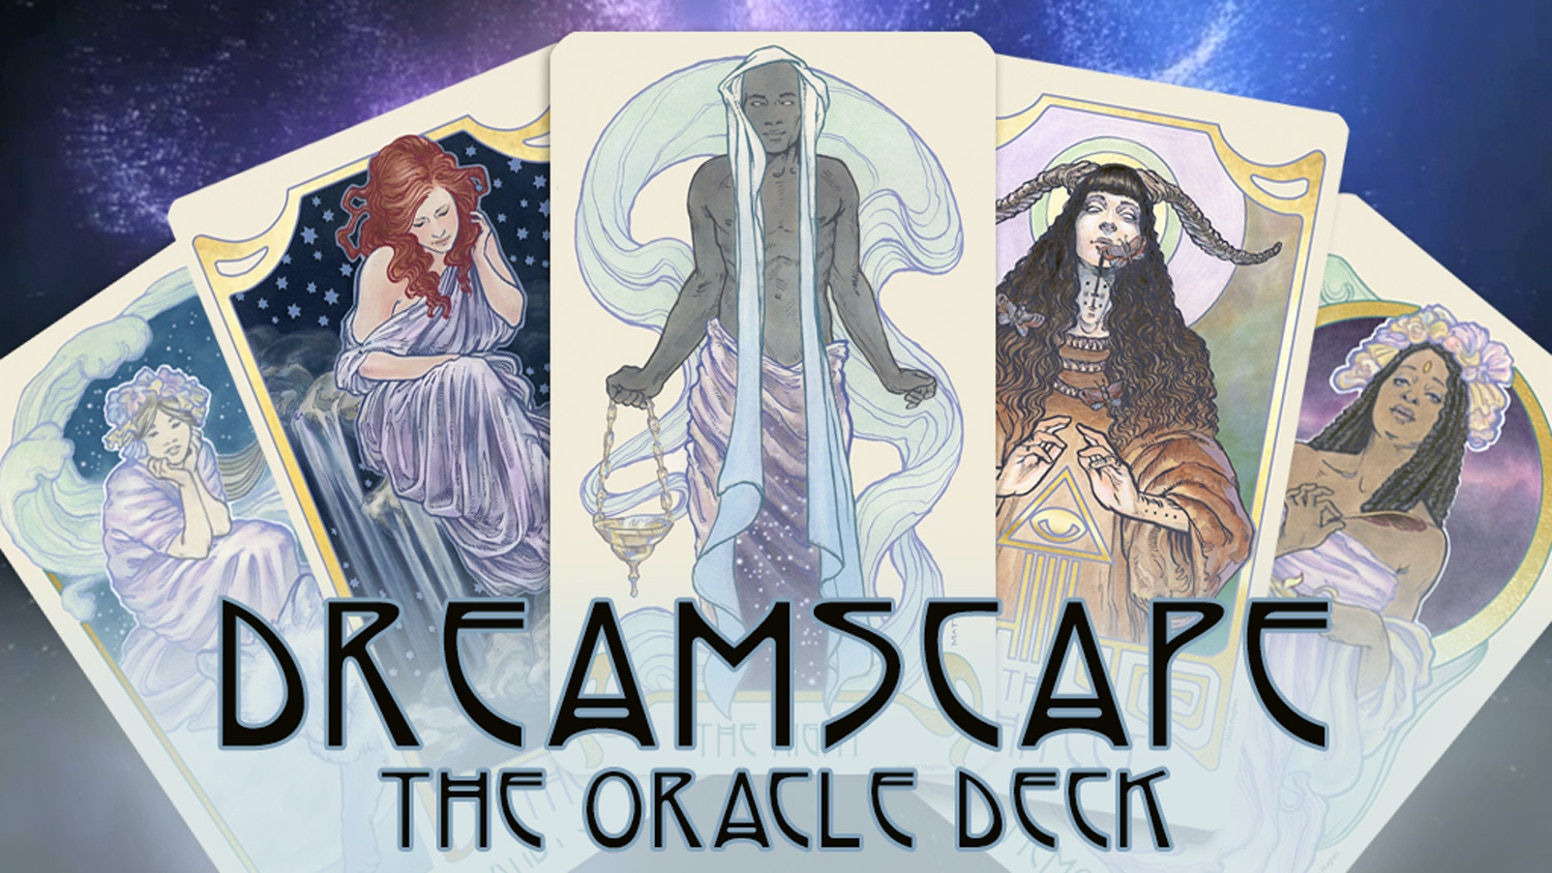 A magical, Art Nouveau inspired Oracle Deck by artist Matt Hughes, creator of the Ethereal Visions Tarot Deck.